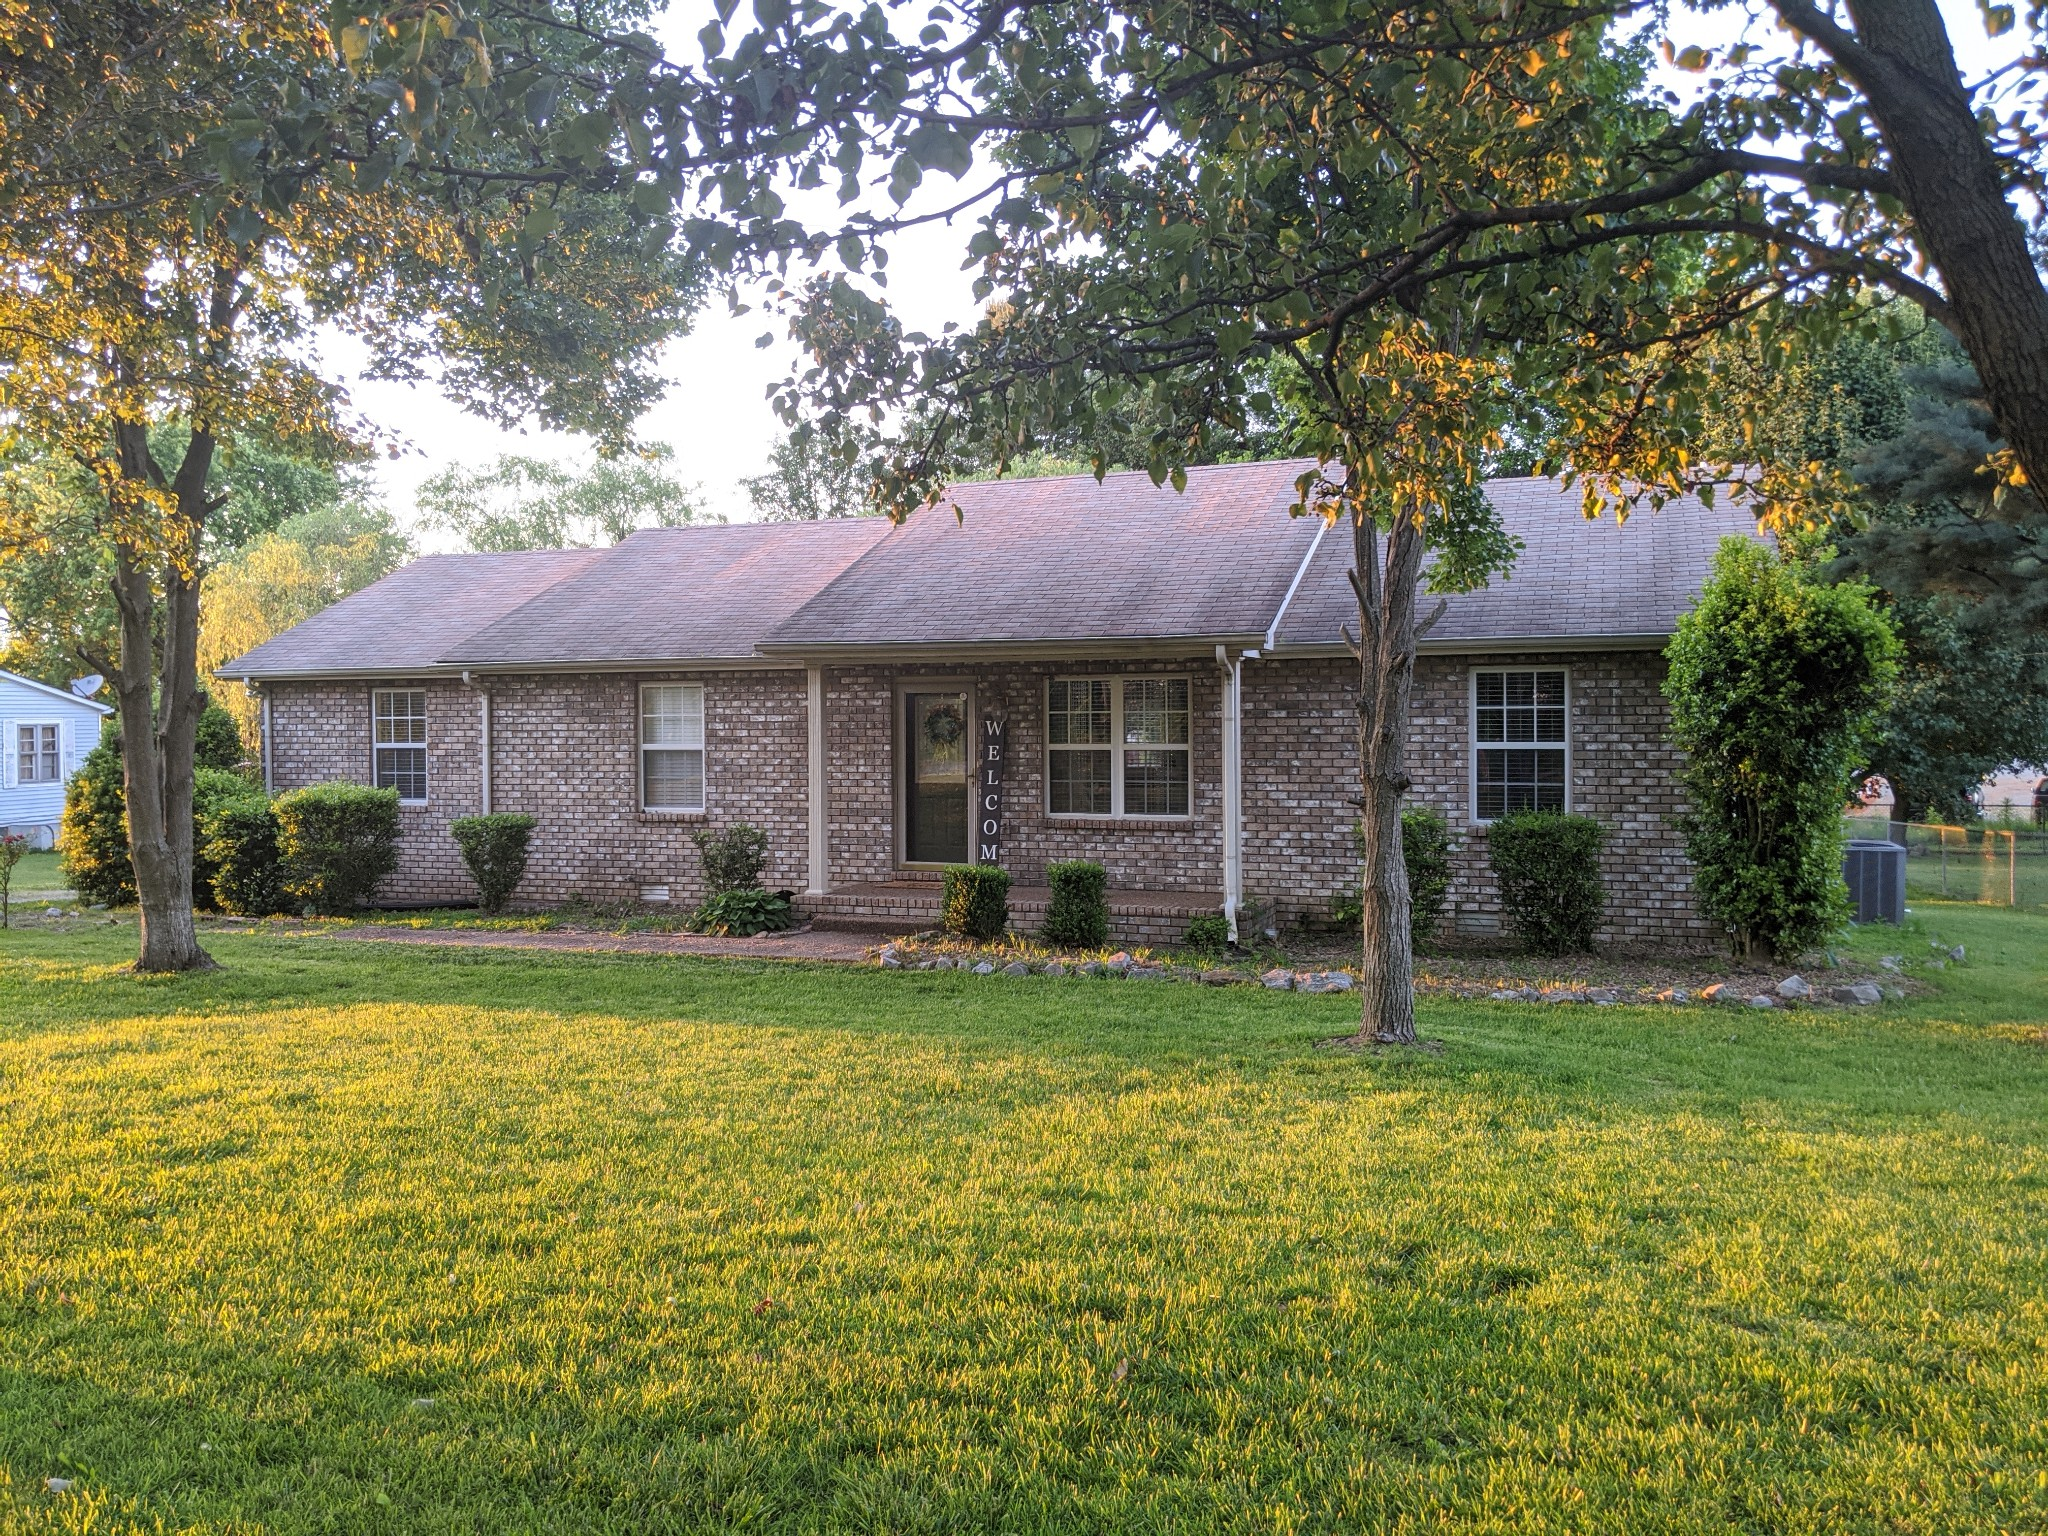 109 T G T Rd Property Photo - Portland, TN real estate listing